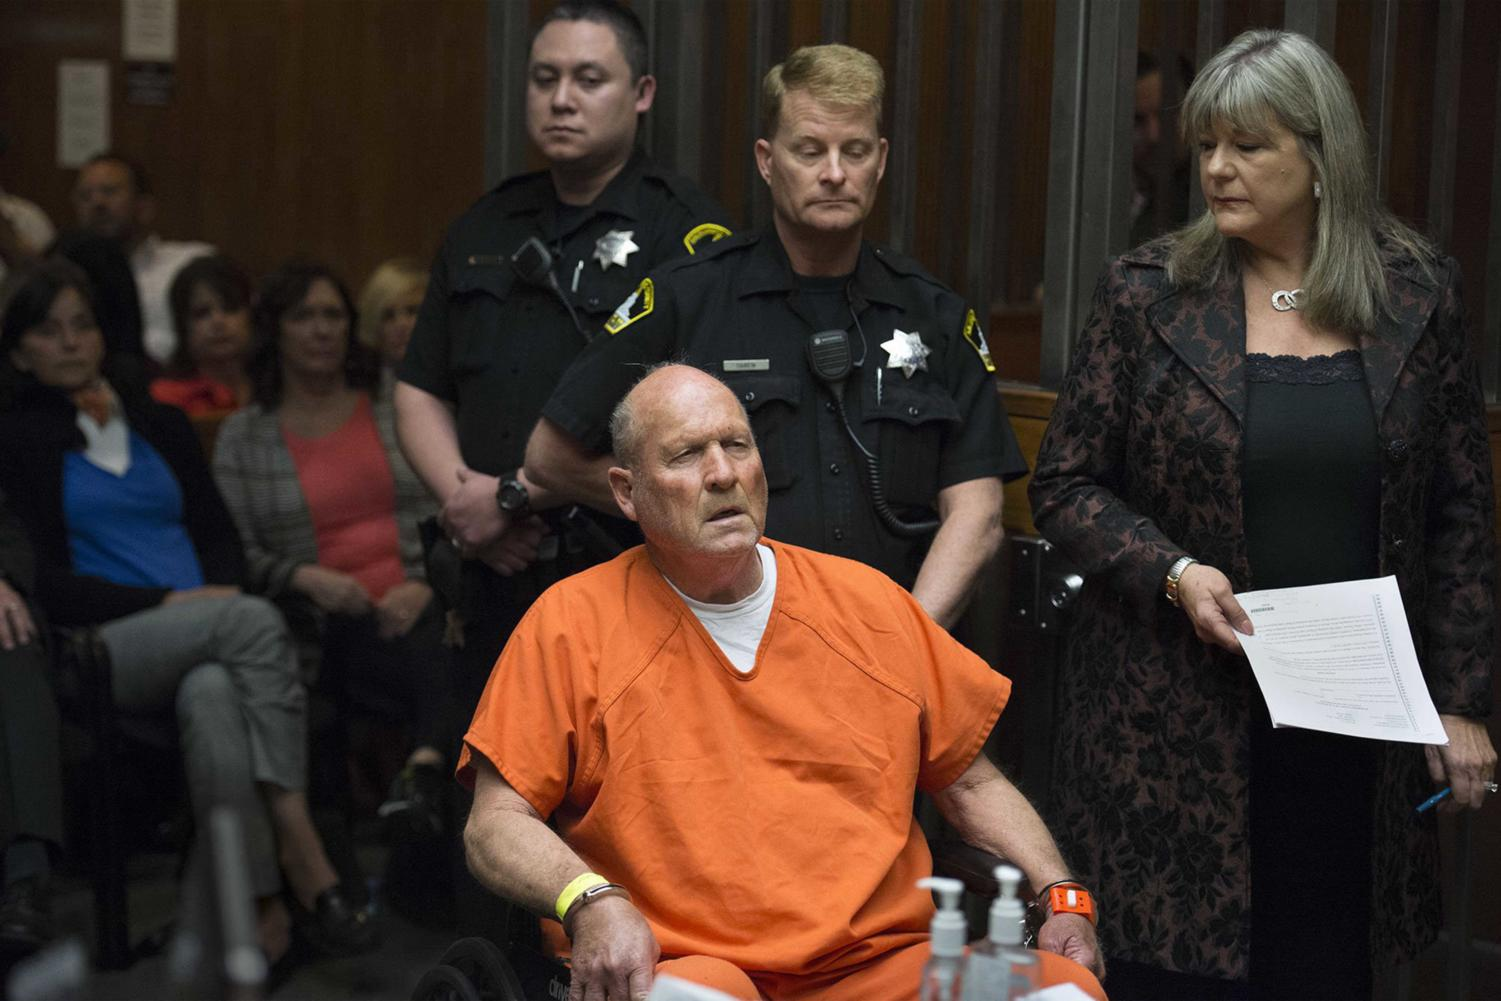 Joseph James DeAngelo, the suspected East Area Rapist, is arraigned in a Sacramento courtroom and charged with murdering Katie and Brian Maggiore in Rancho Cordova in 1978 on Friday, April 27, 2018, in Sacramento, Calif. (Randy Pench/Sacramento Bee/TNS)